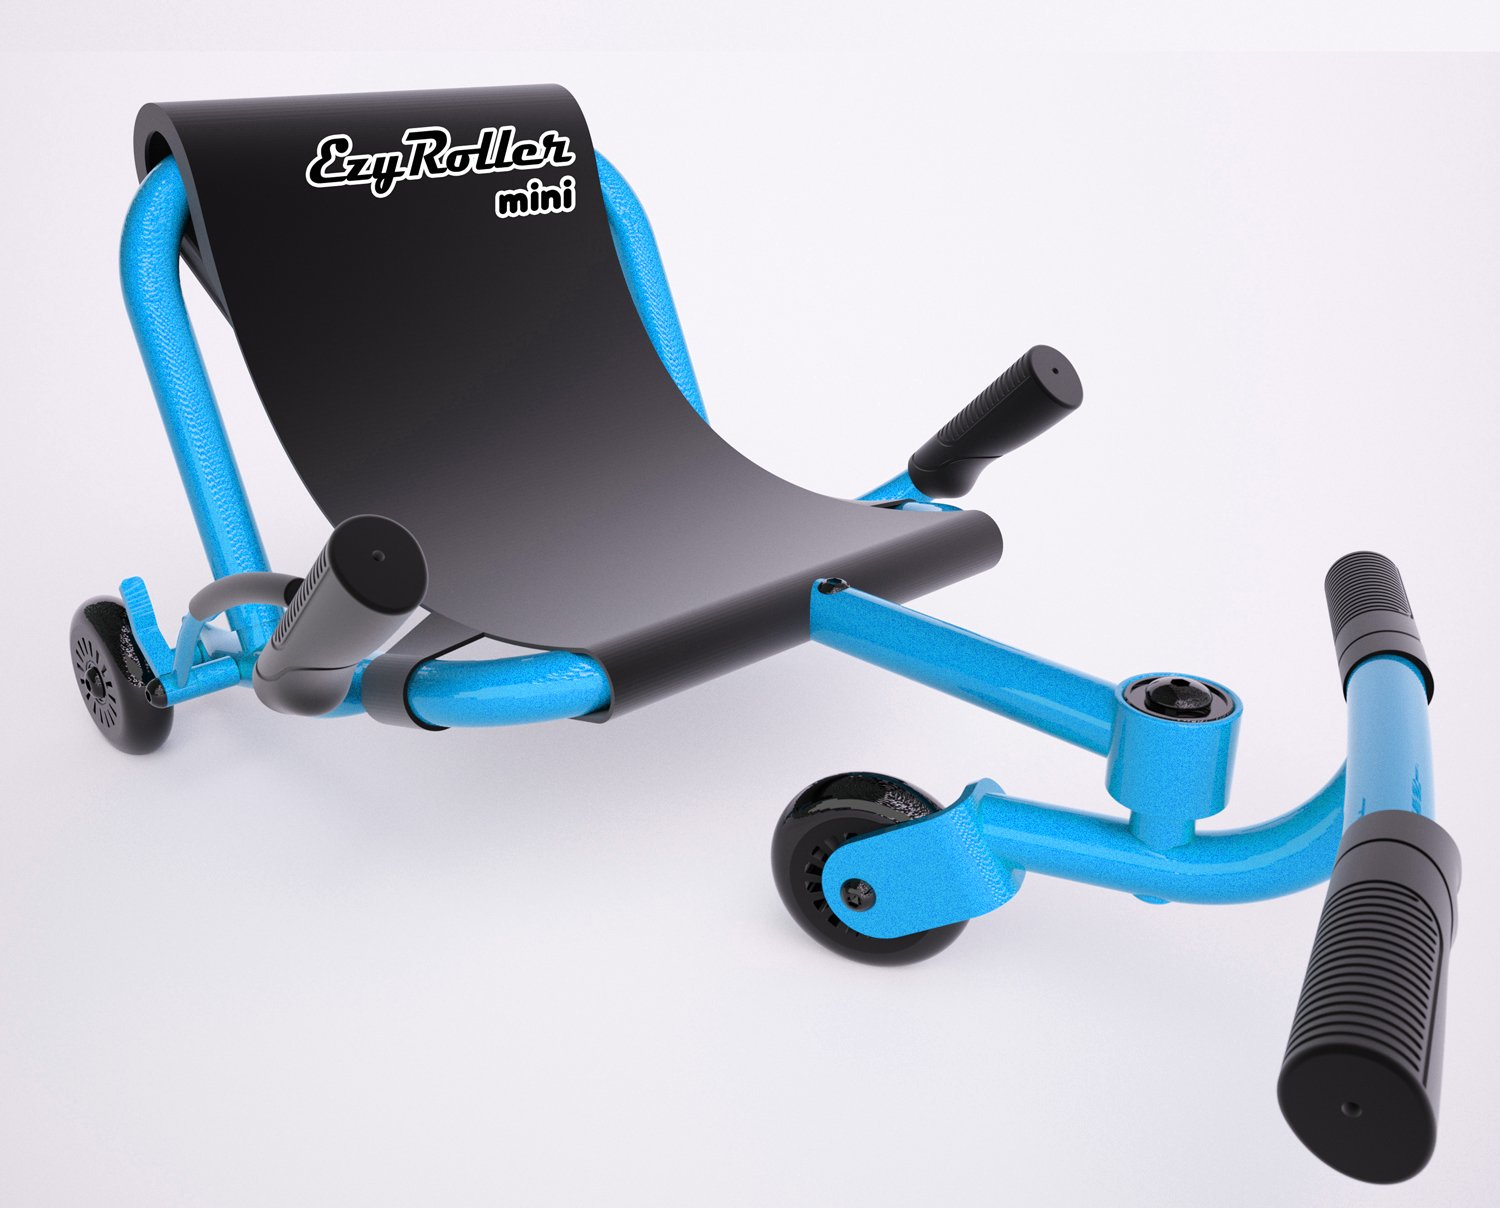 Amazon.com: Ezyroller Mini - Blue: Toys & Games